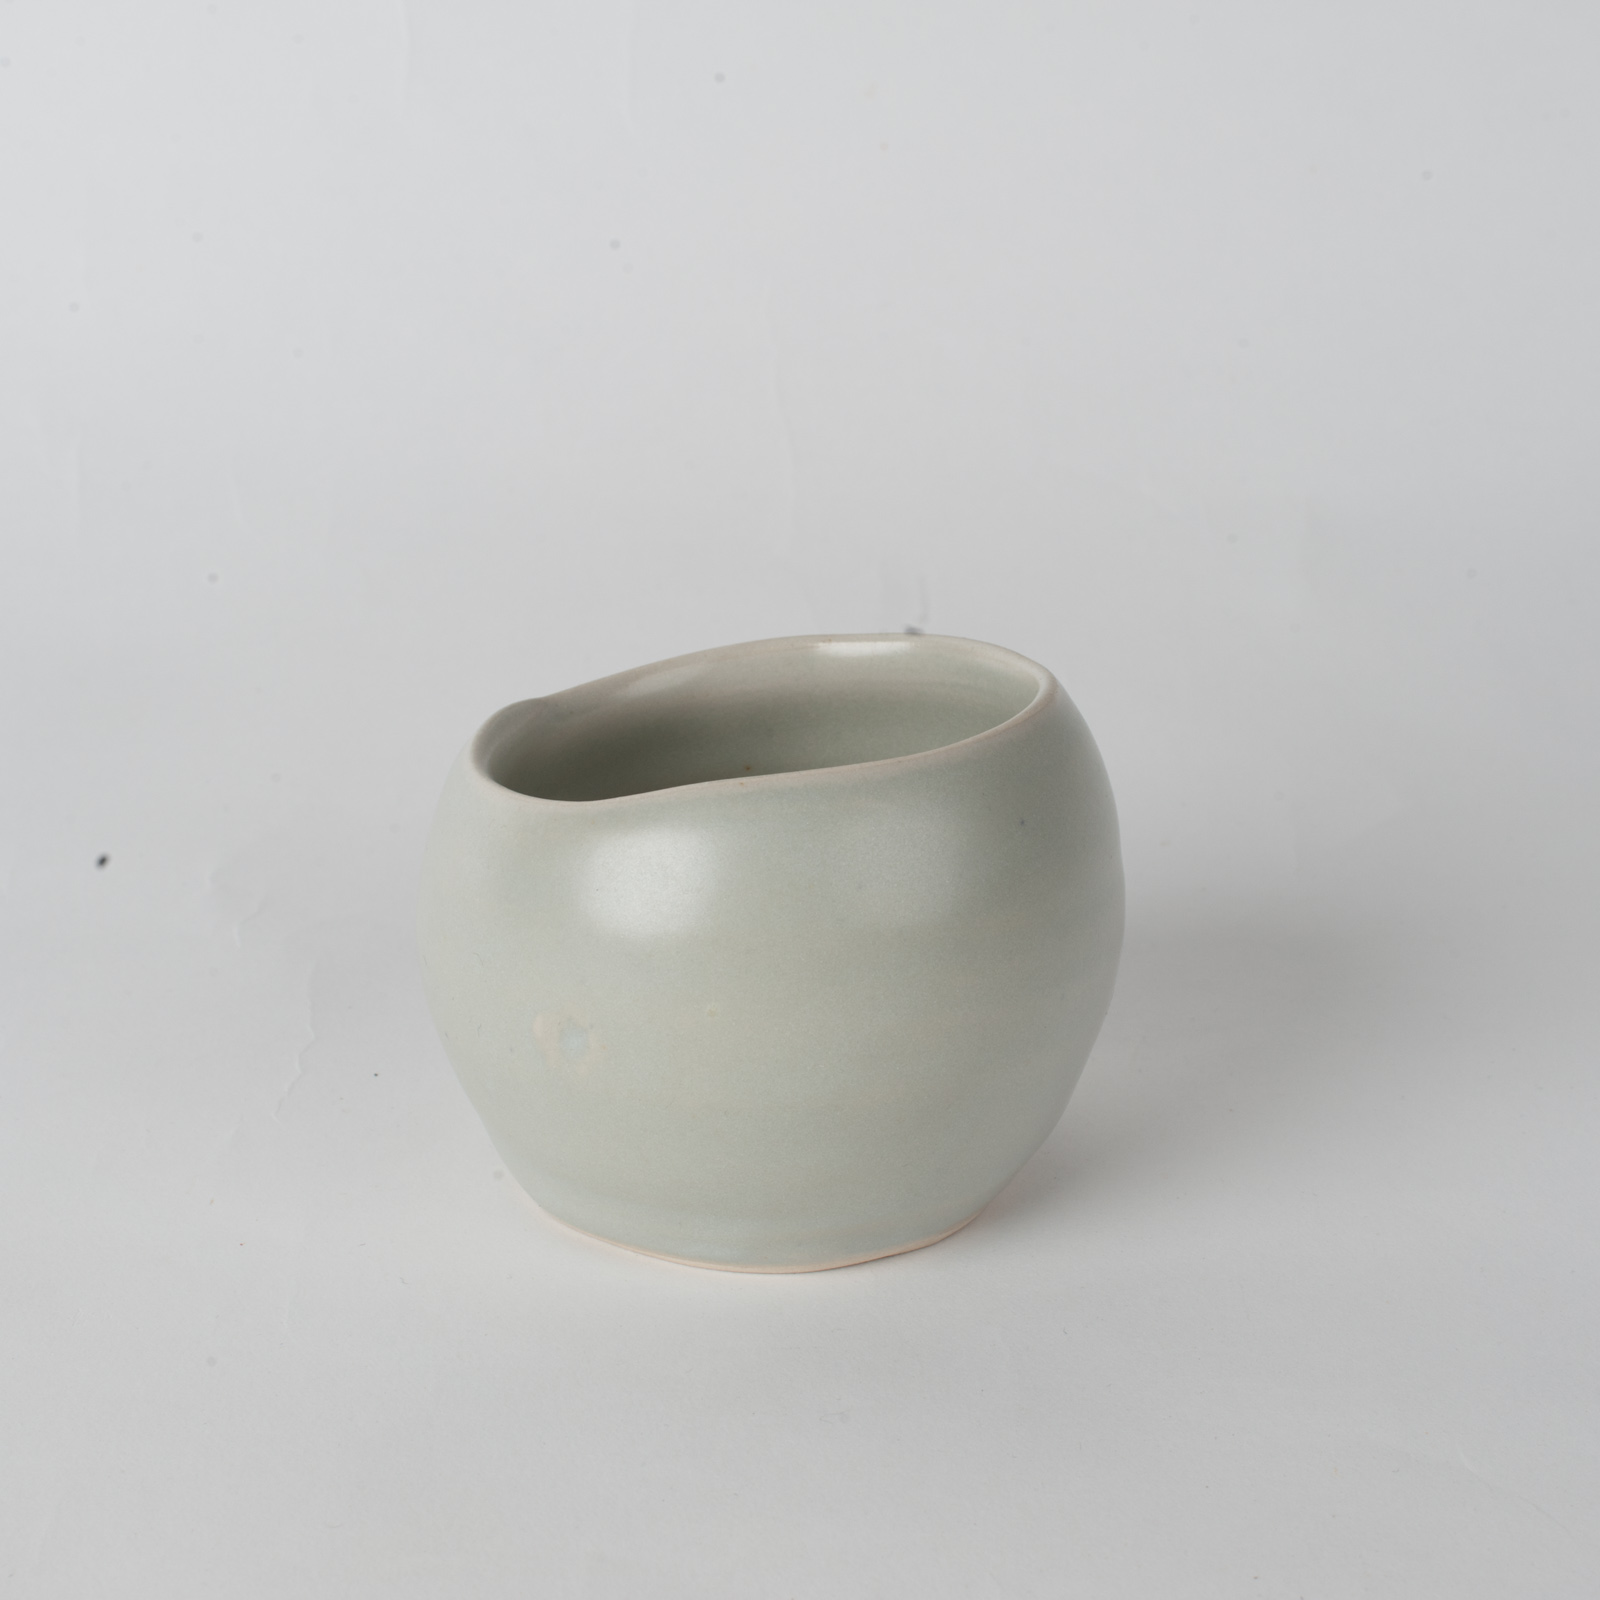 Whiskey Cup In Stone Ceramic By James Lemon 03